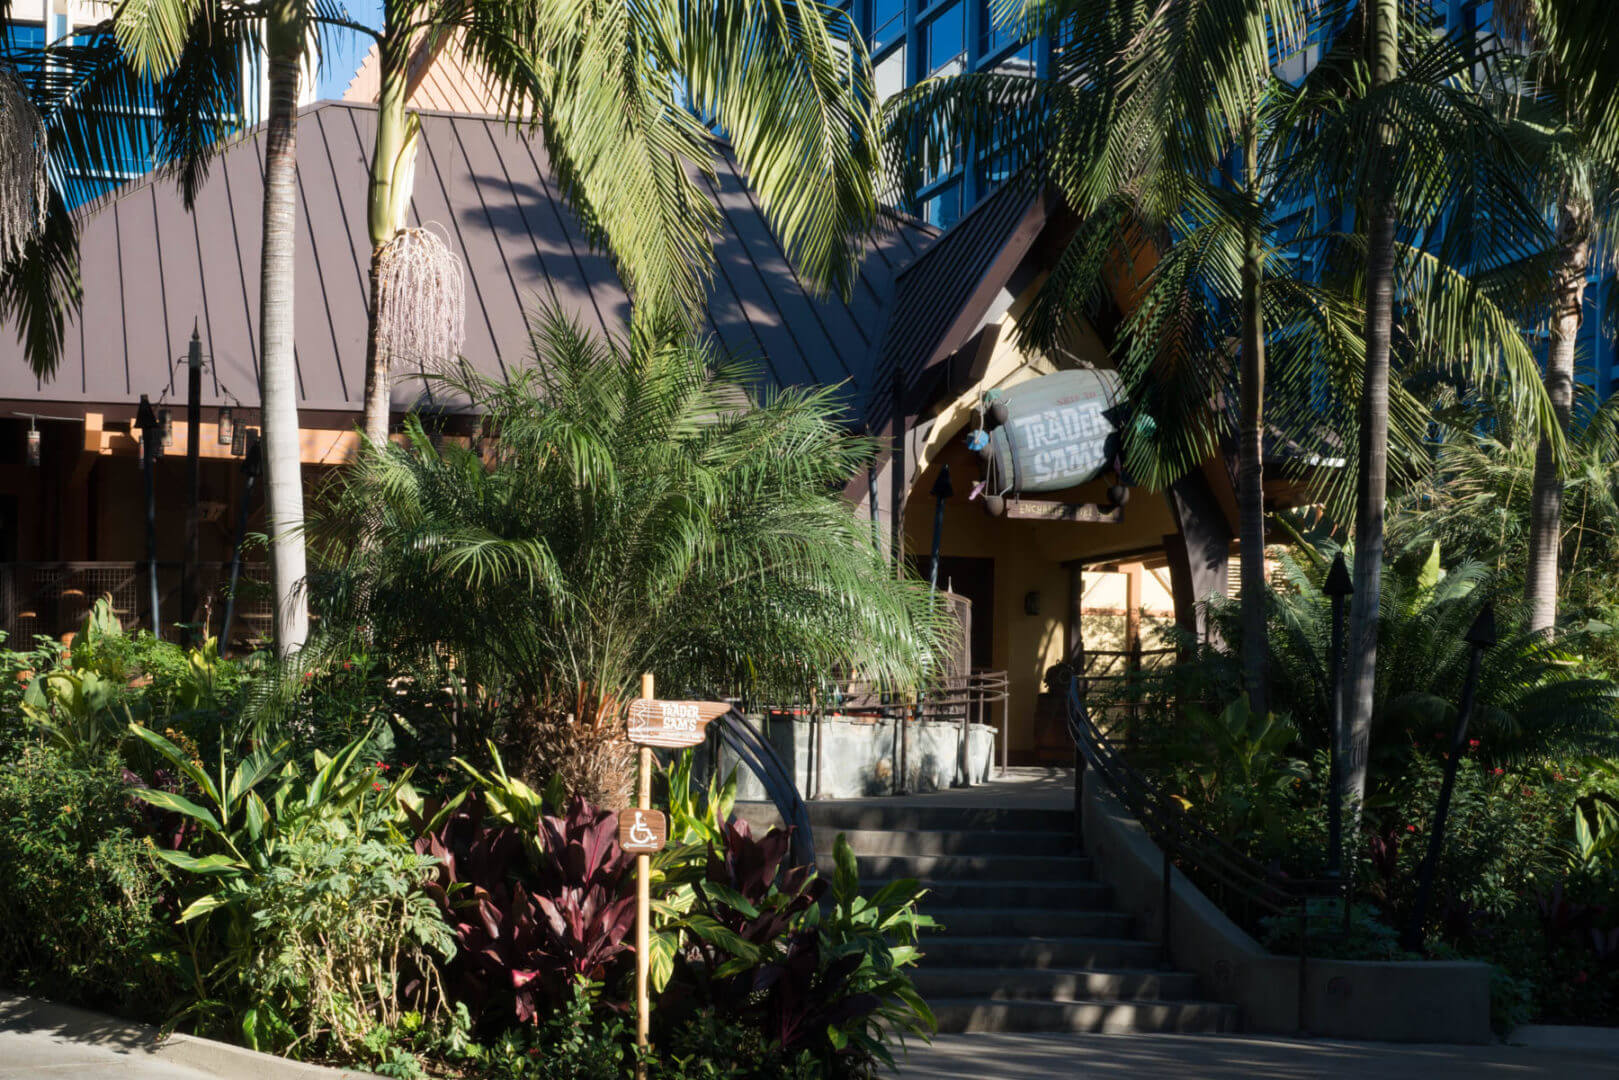 Trader Sam's Enchanted Tiki Bar and Lounge Entrance and Sign - Activities for Adults at Disneyland